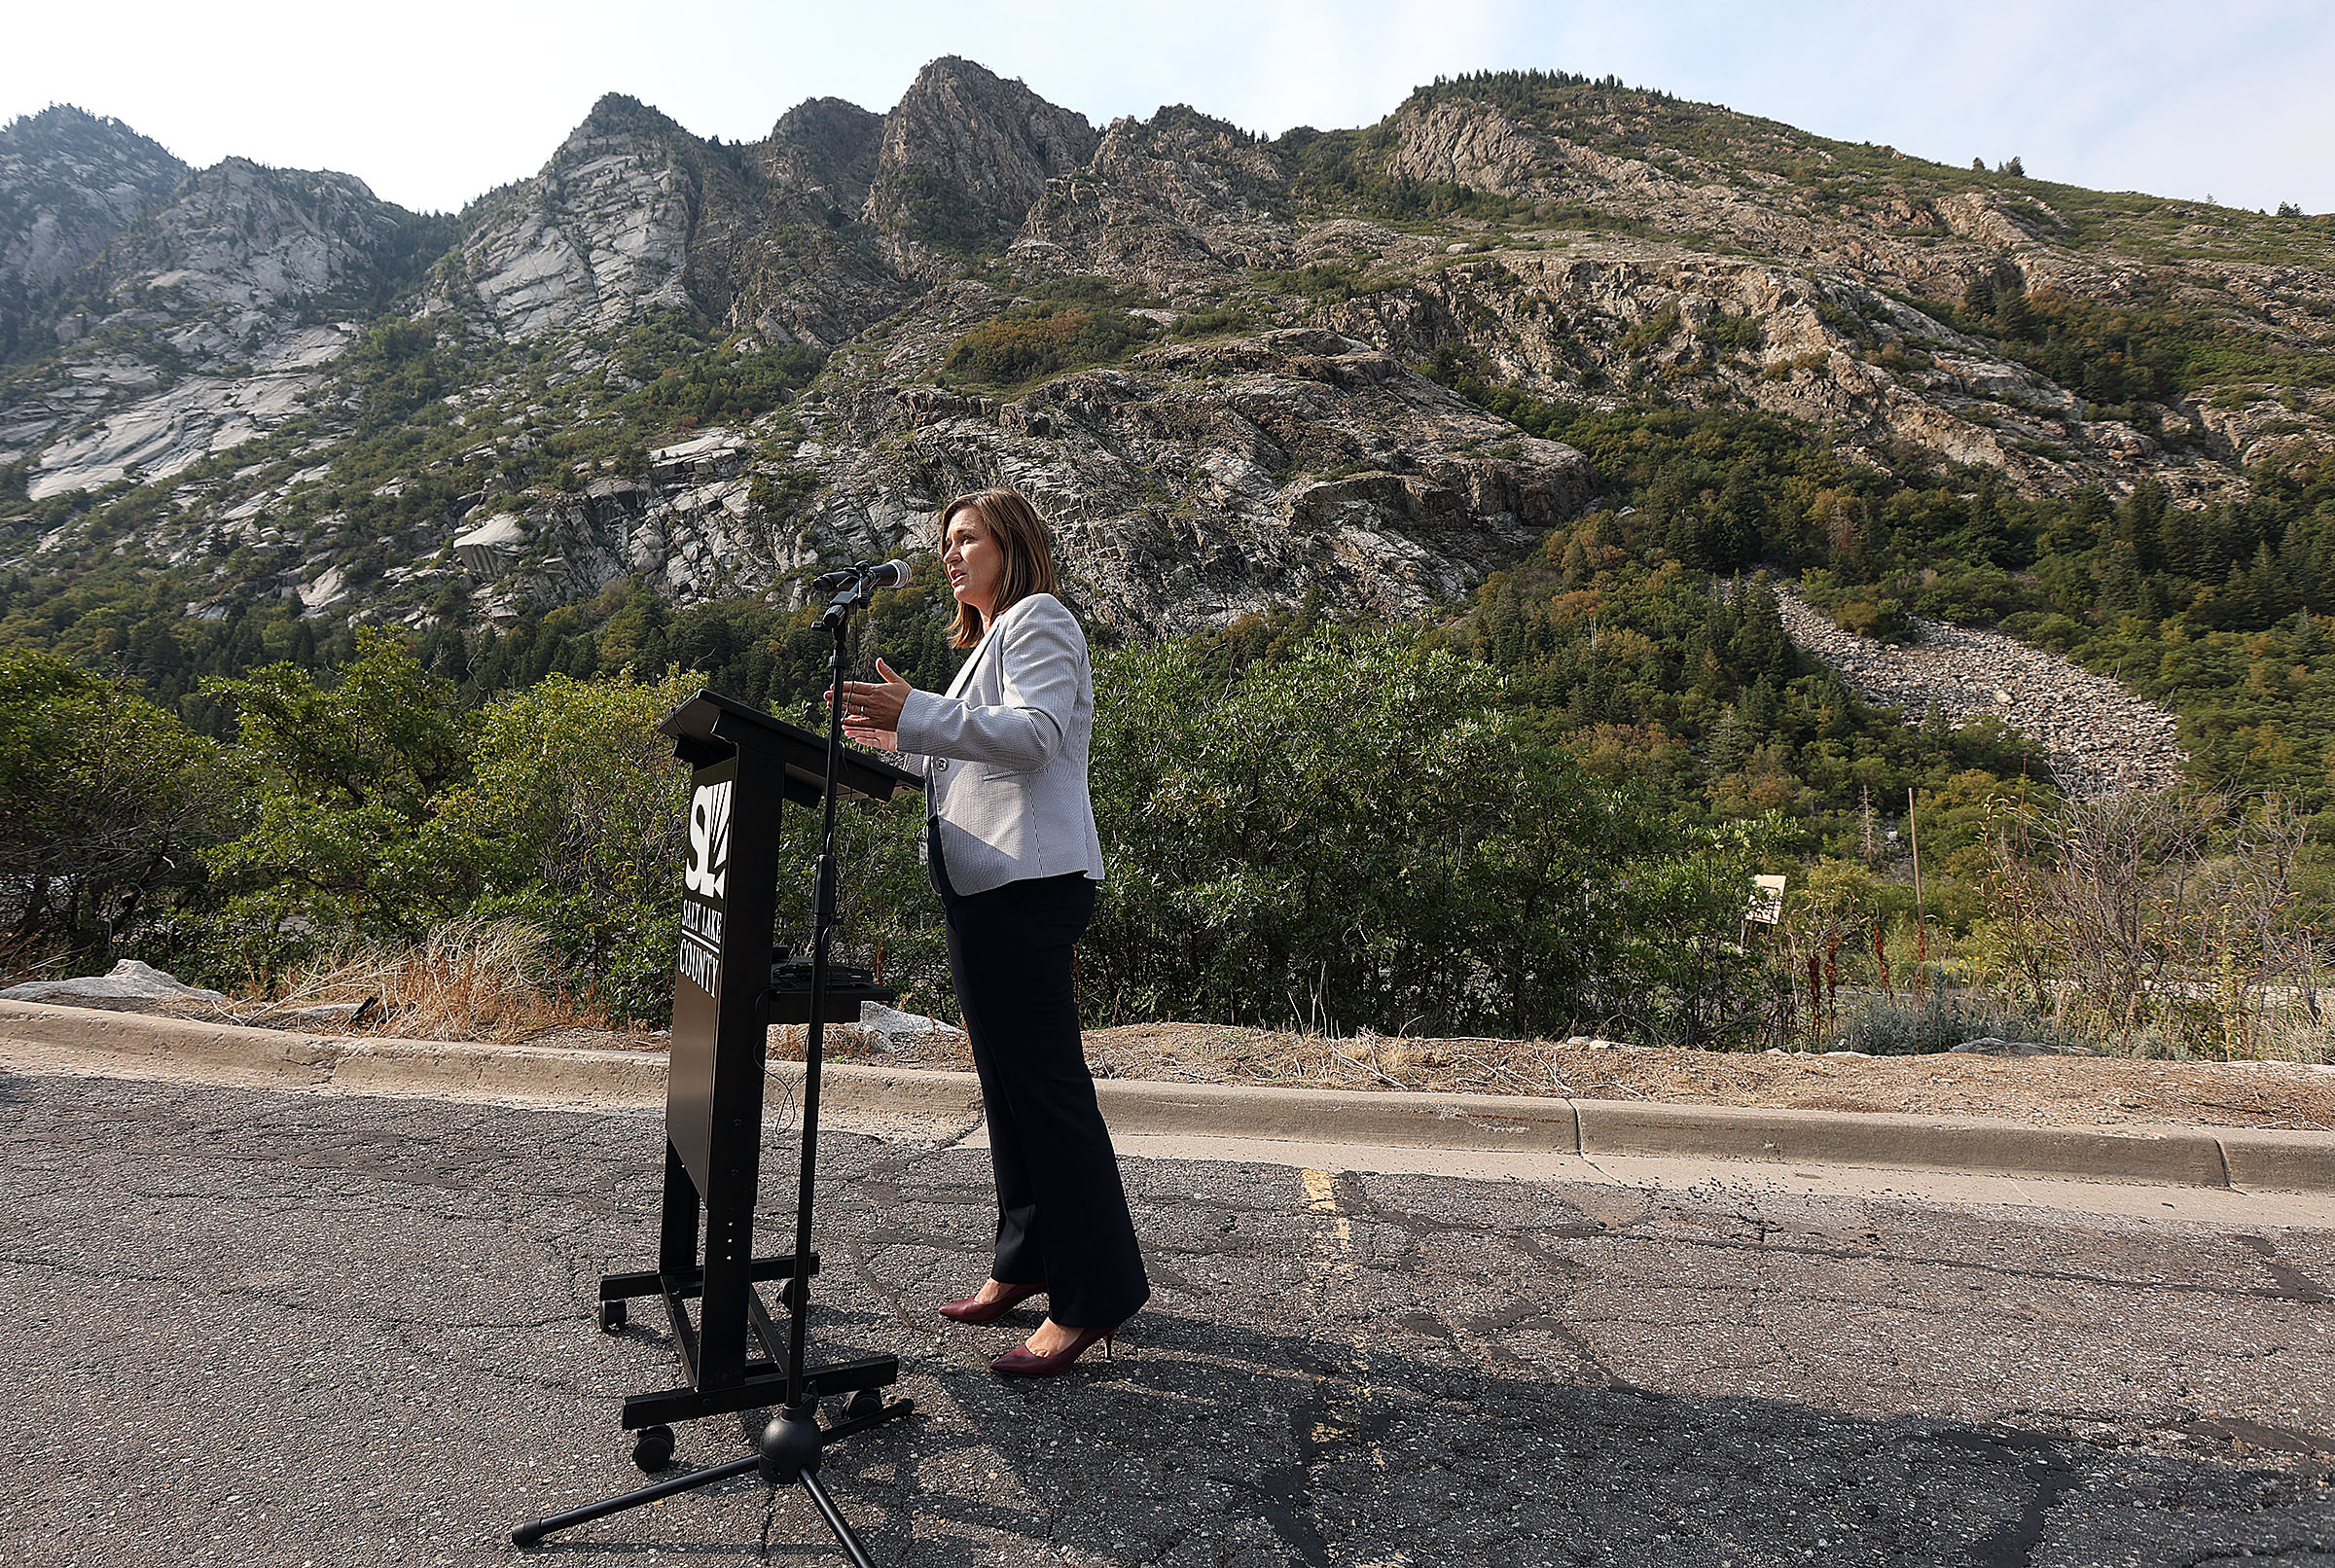 Salt Lake County Mayor Jenny Wilsonvoices her opposition to a Utah Department of Transportation proposal to reduce traffic in Little Cottonwood Canyon by building a gondola during press conference at the mouth of the canyon in Sandy on Wednesday, Sept. 1, 2021.